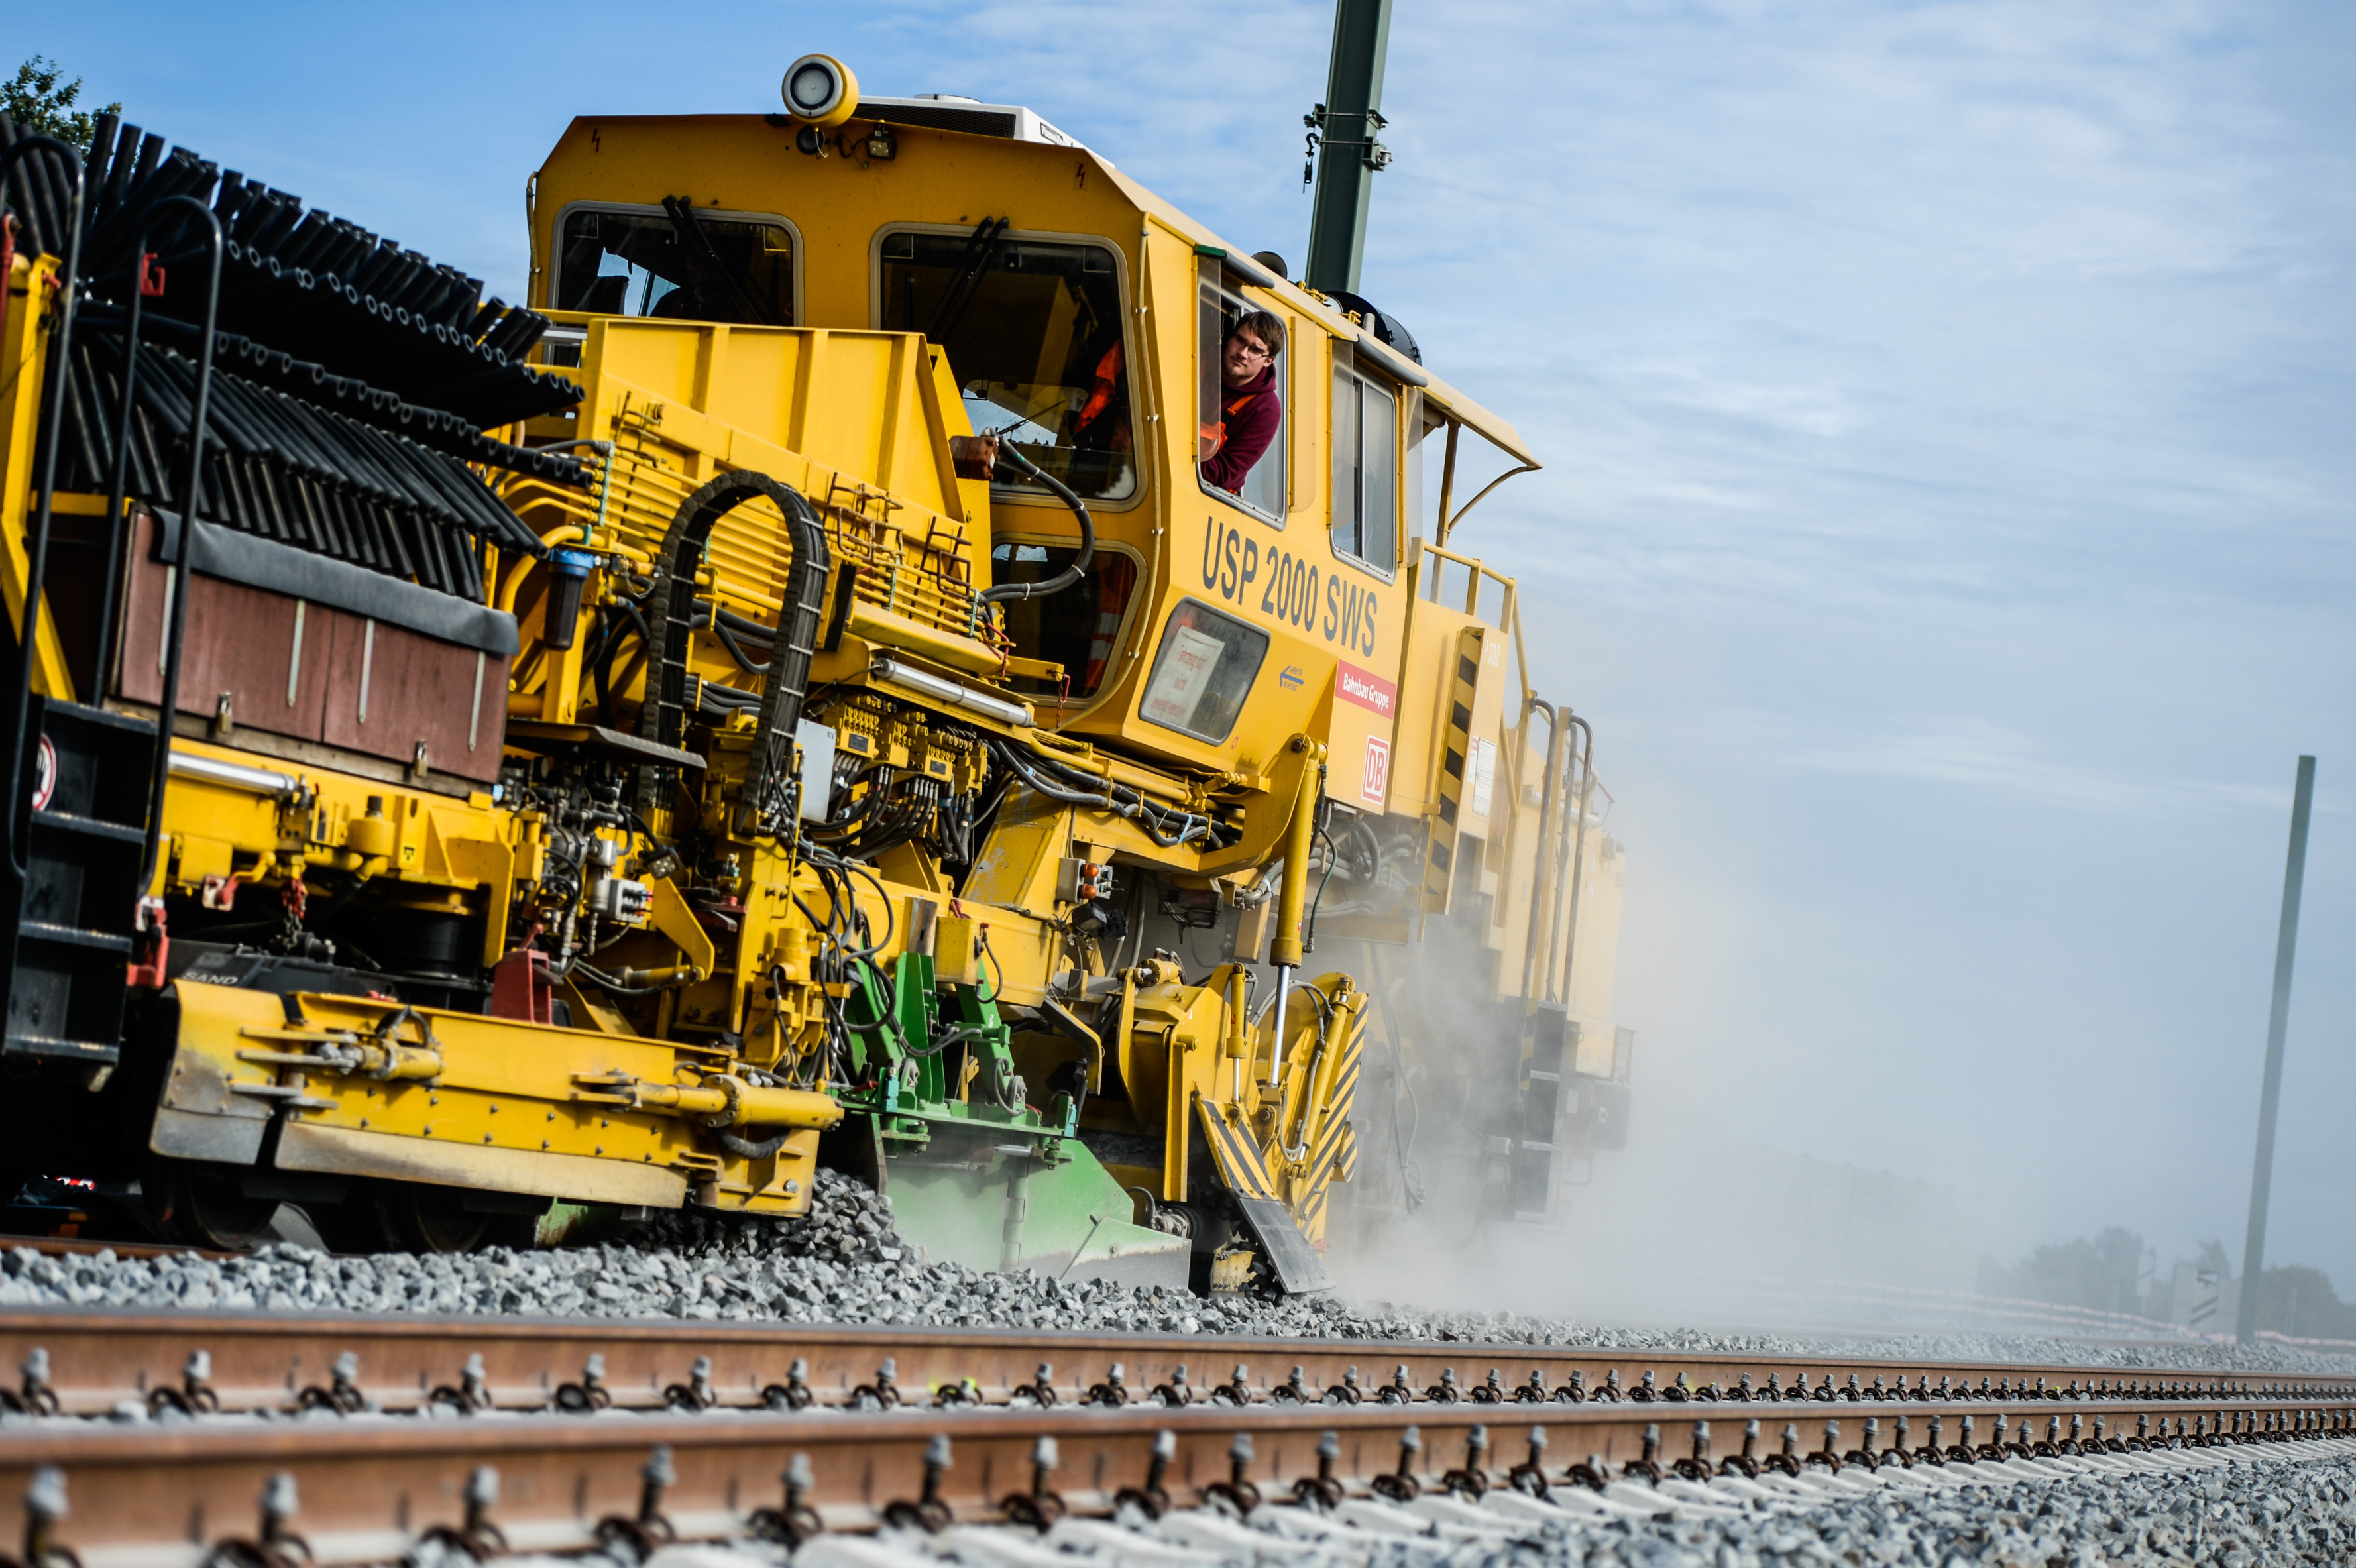 DB makes 12.2 billion infrastructure investment in 2020